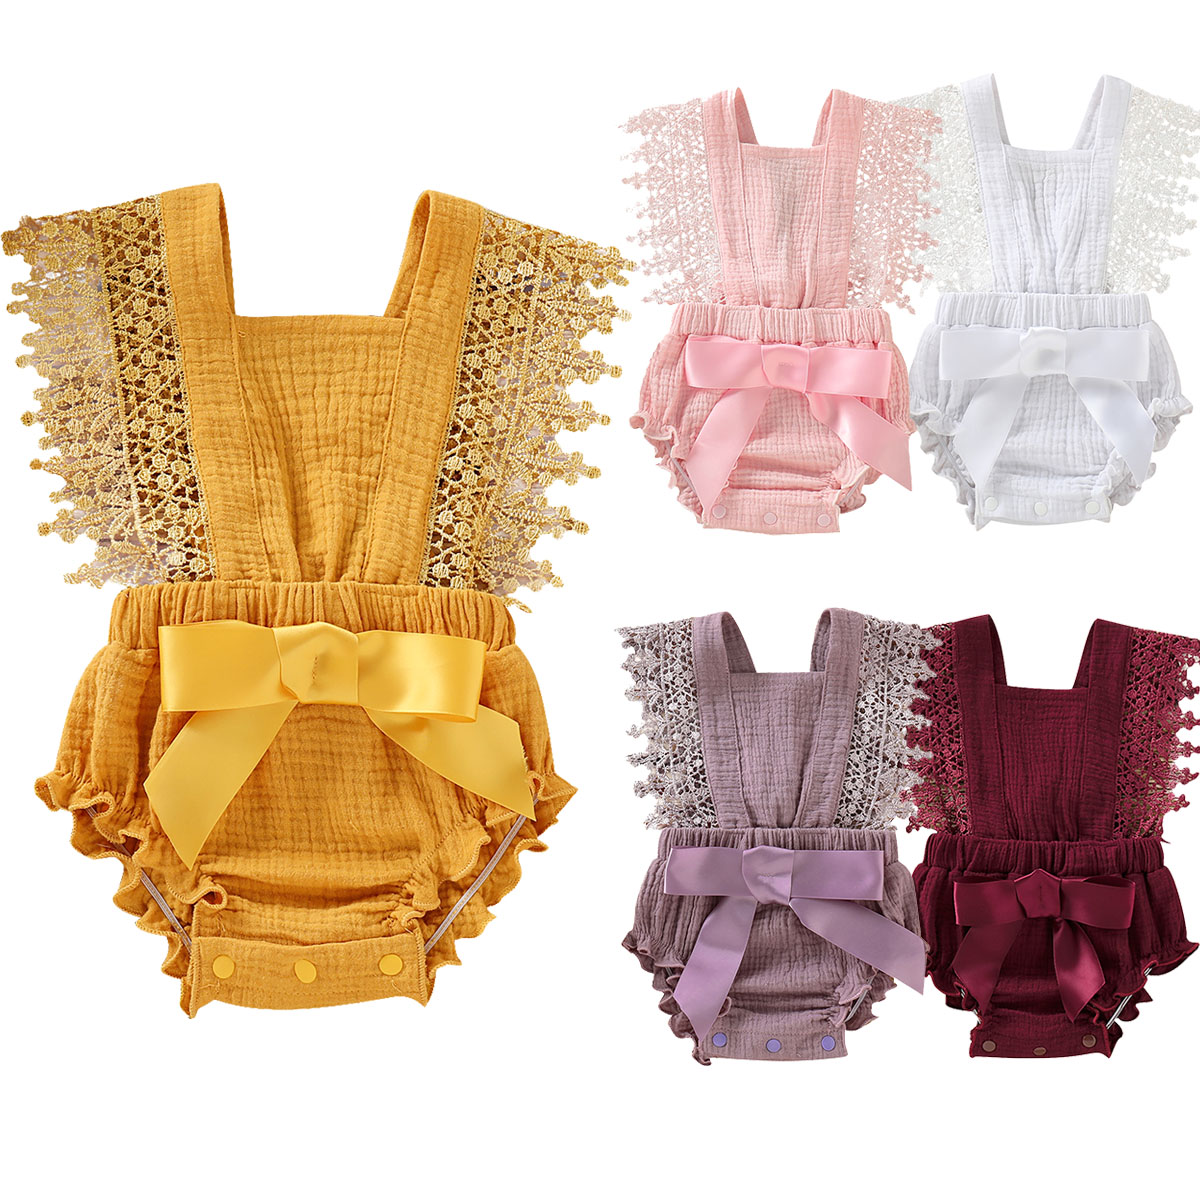 Newborn Infant Baby Ruffle Romper Lace Flutter Sleeveless Princess Clothes Bowknot Tassels Jumpsuit Sunsuits Summer Outfits D20